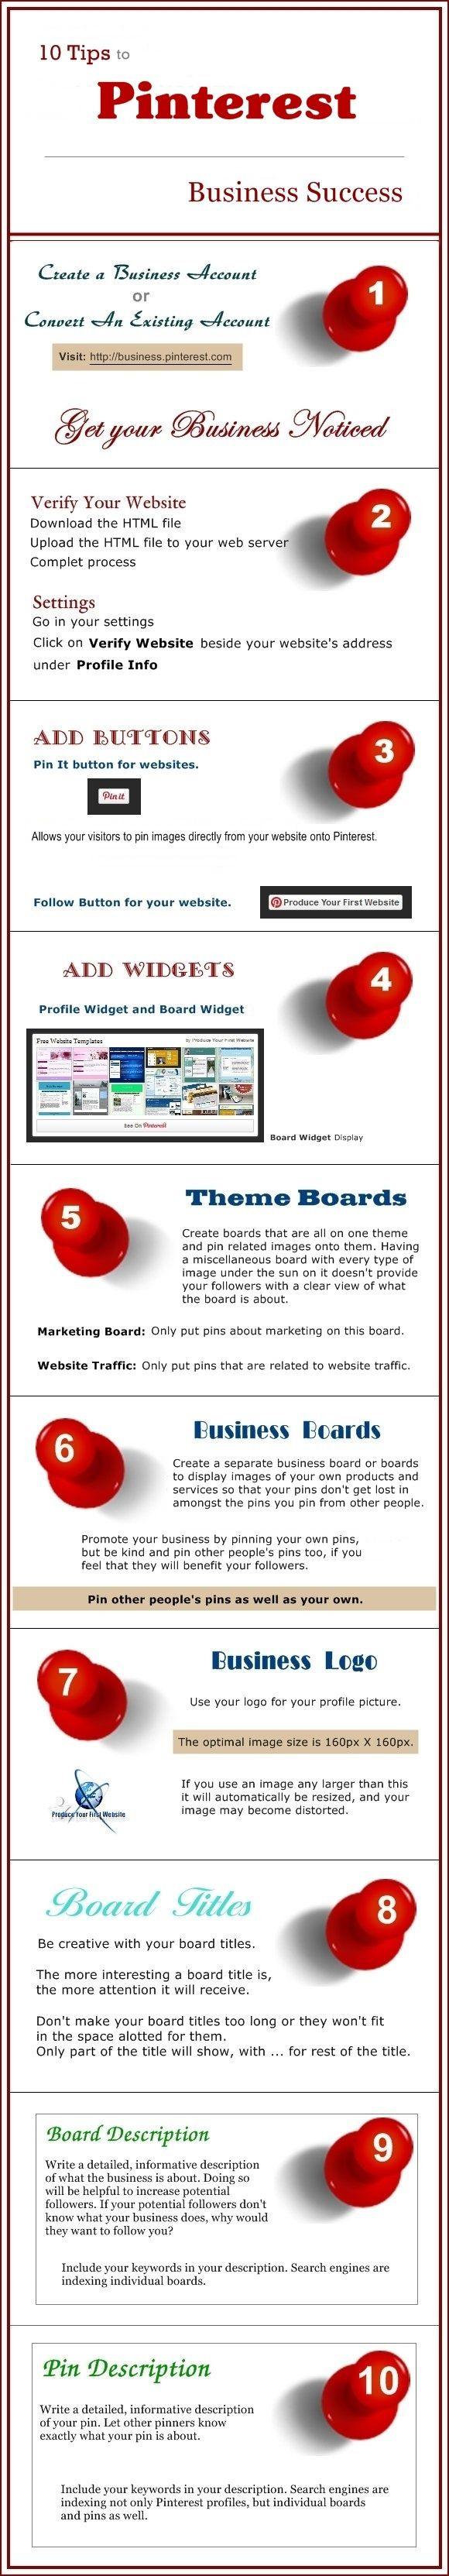 10 Tips Pinterest - Business Success